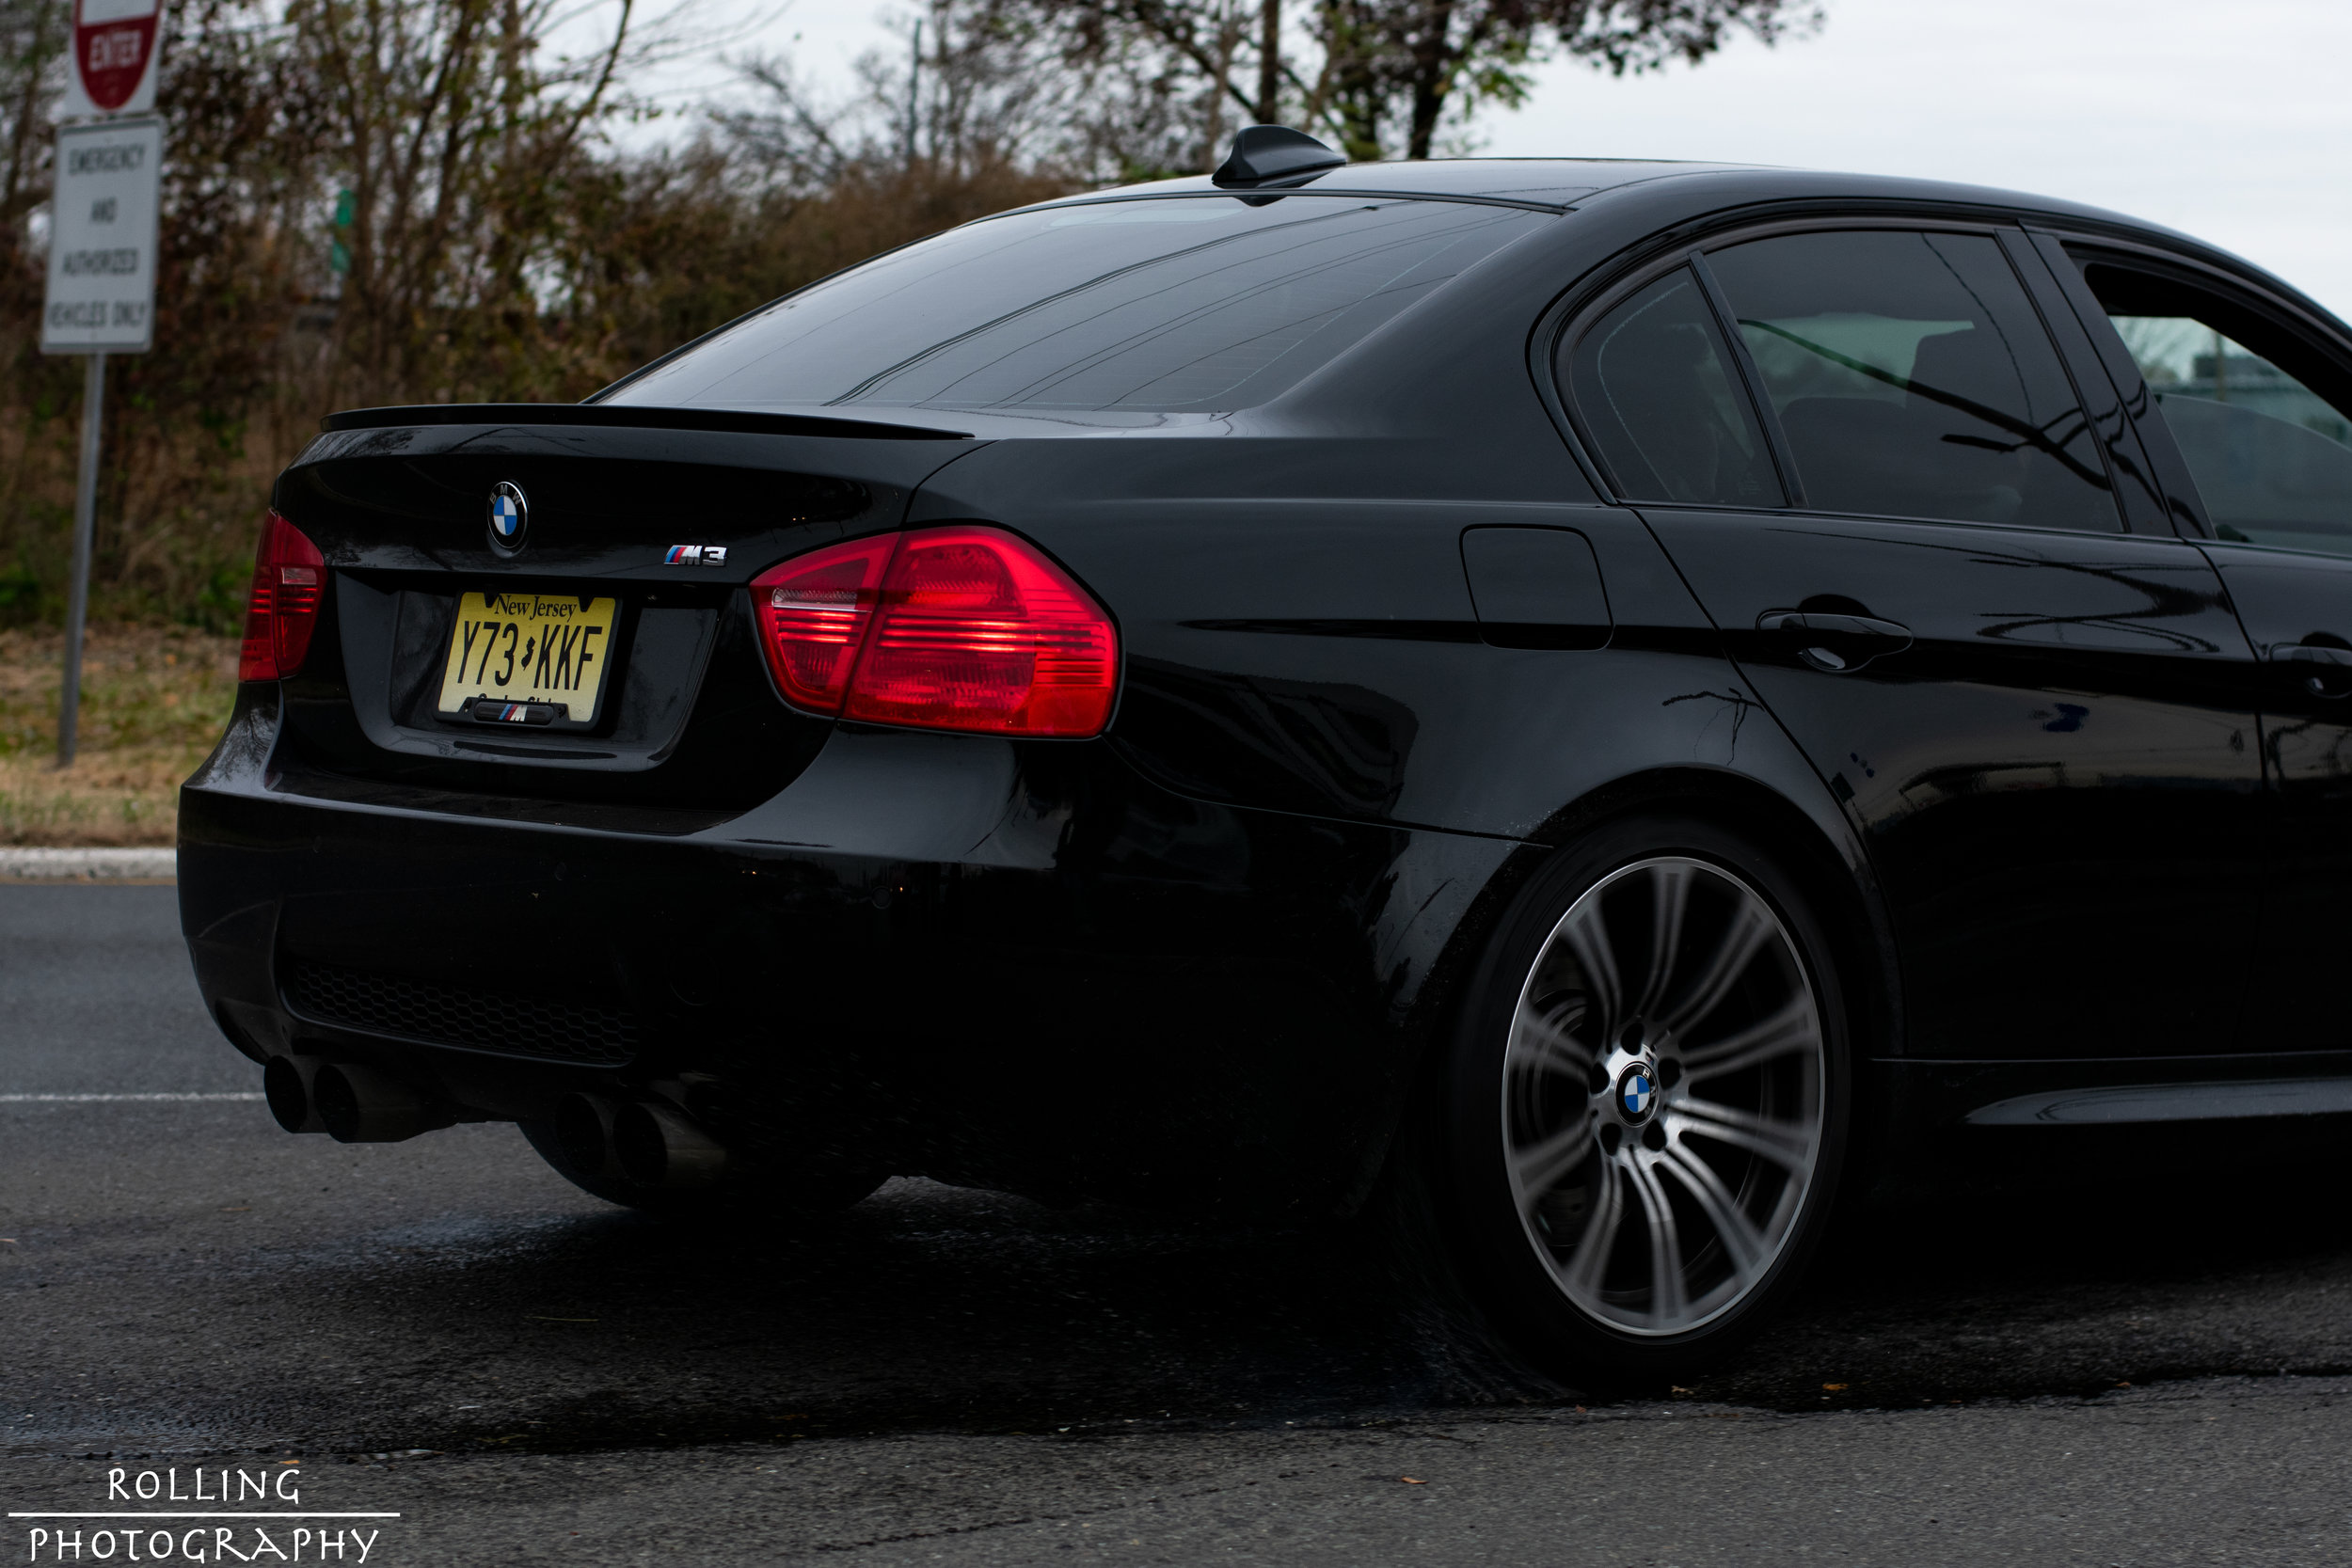 BMW M3 Sedan (E90)  ISO 200, 50mm, f / 4.5 Shutter Speed 1/640